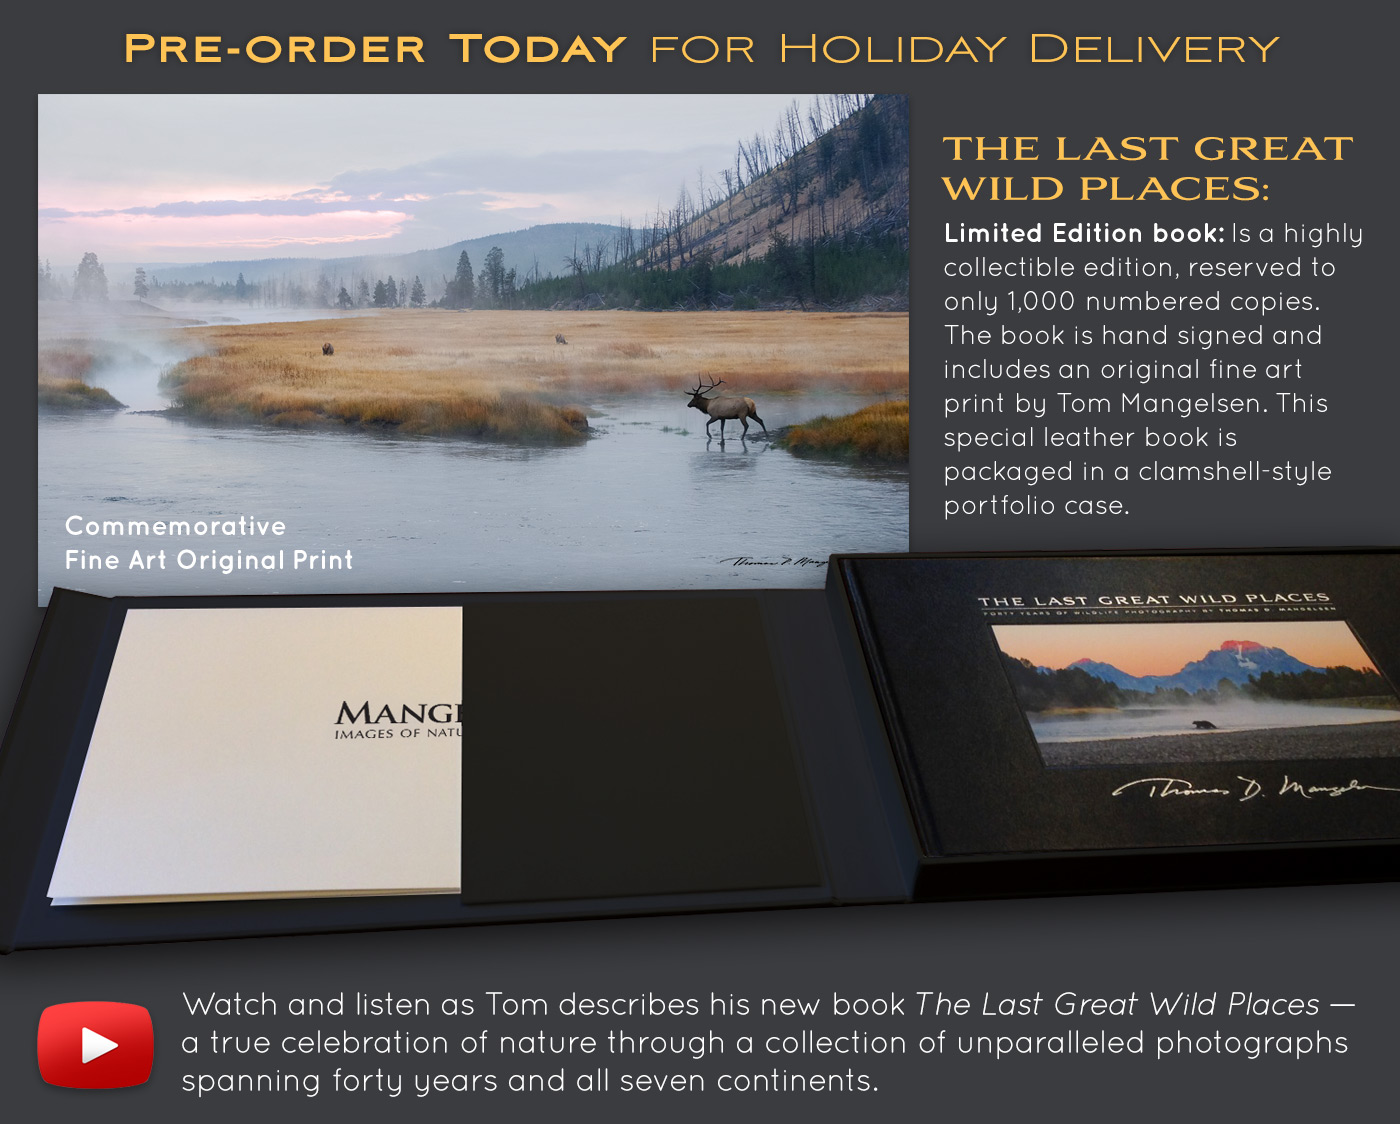 Pre-order Tom's book now and bring a little bit of wildness into your home or office!